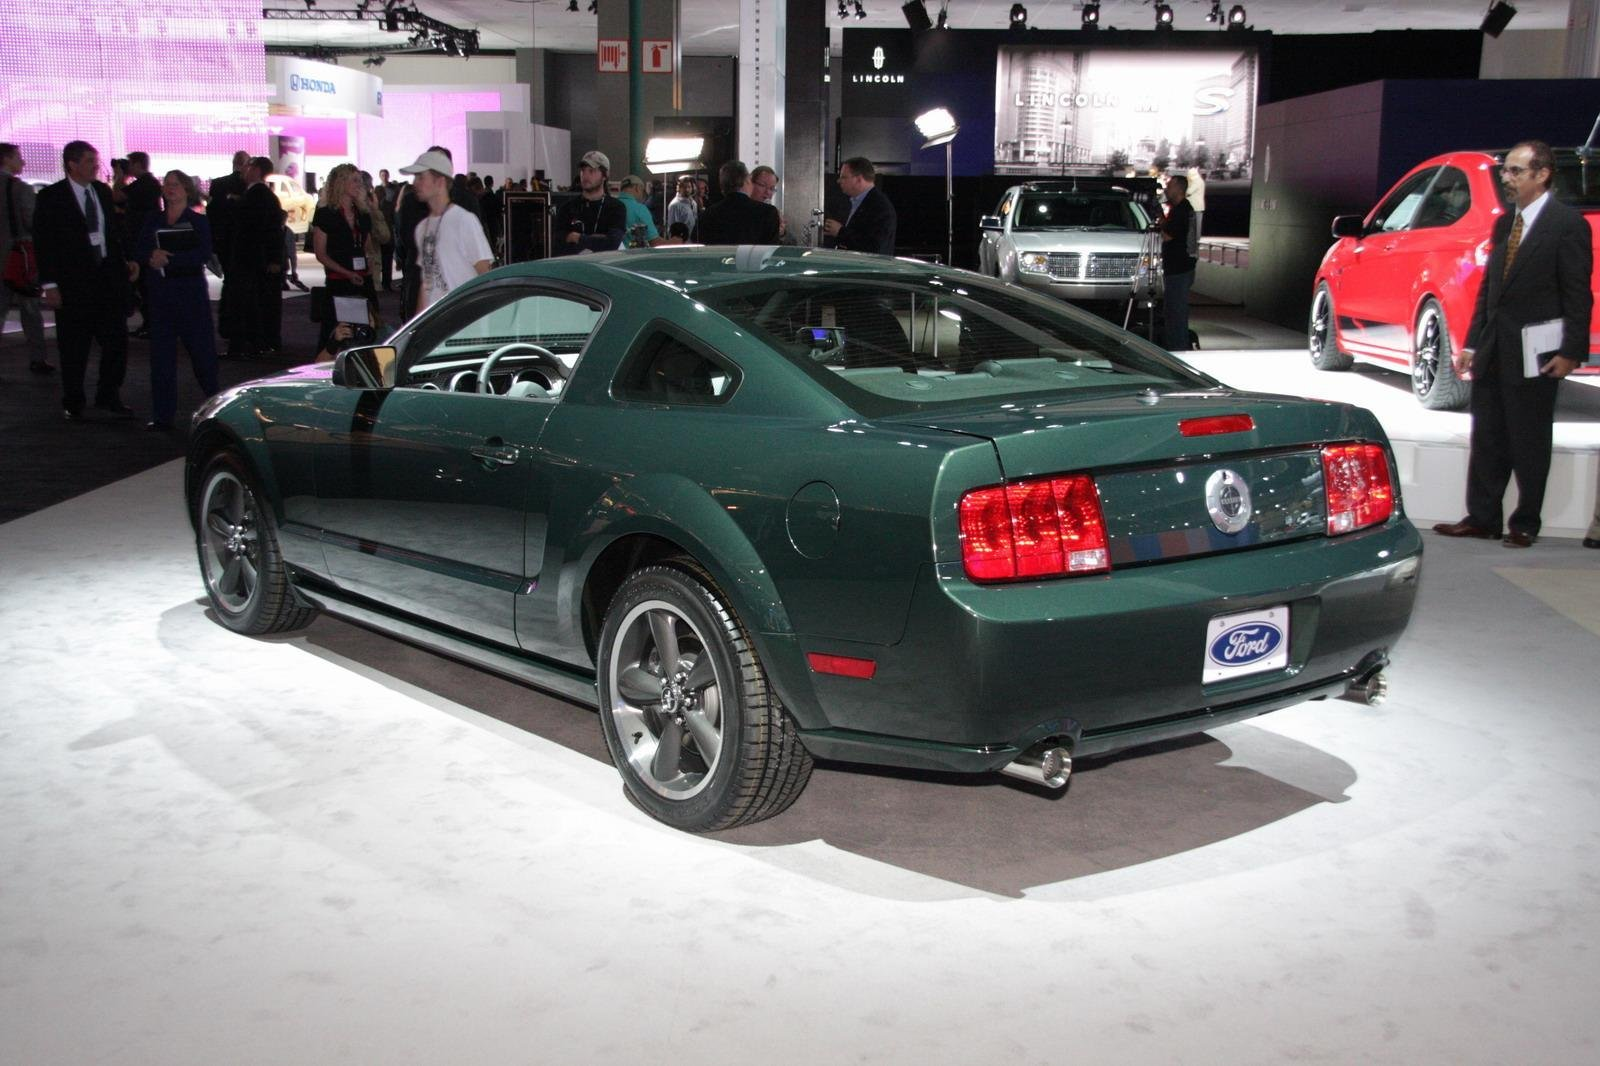 2008 ford mustang bullitt picture 215043 car review top speed. Black Bedroom Furniture Sets. Home Design Ideas